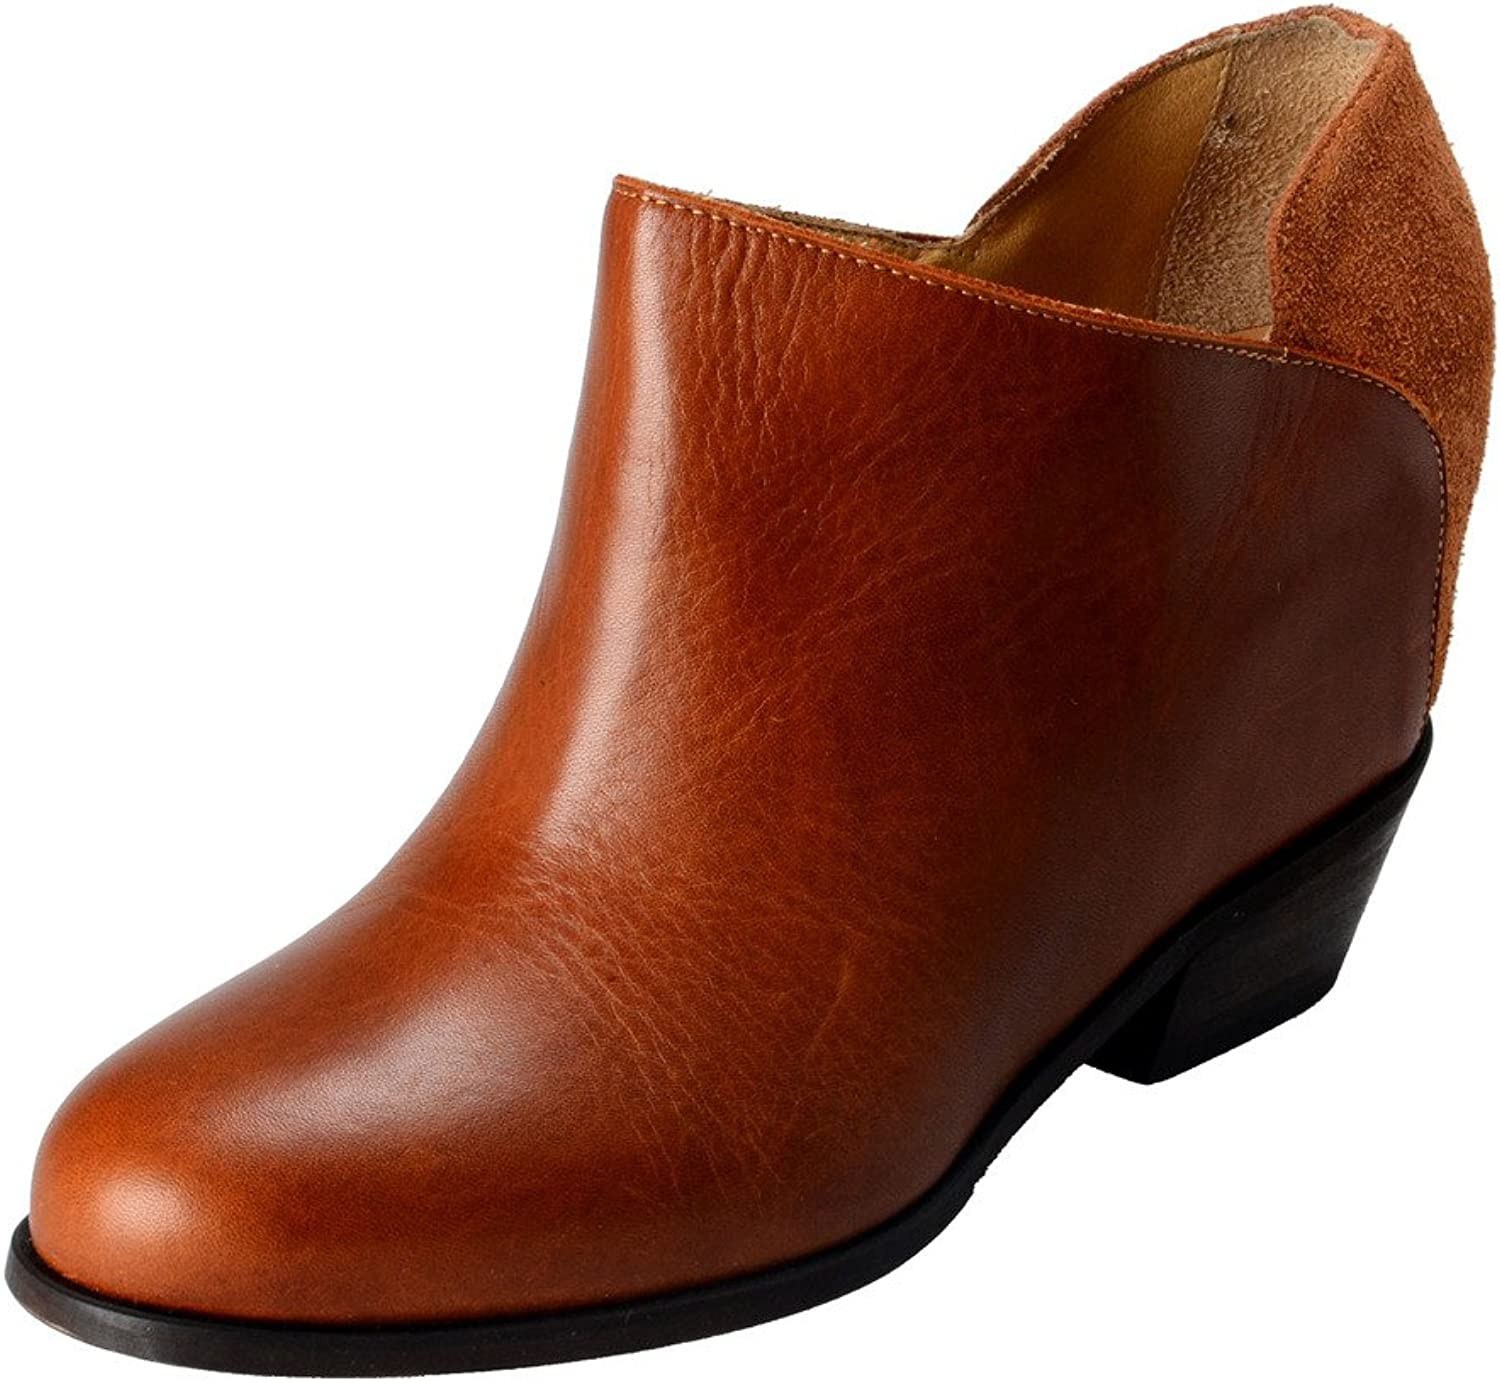 MAISON MARGIELA MM6 Women's Suede Leather Hidden Wedge Ankle Boots shoes